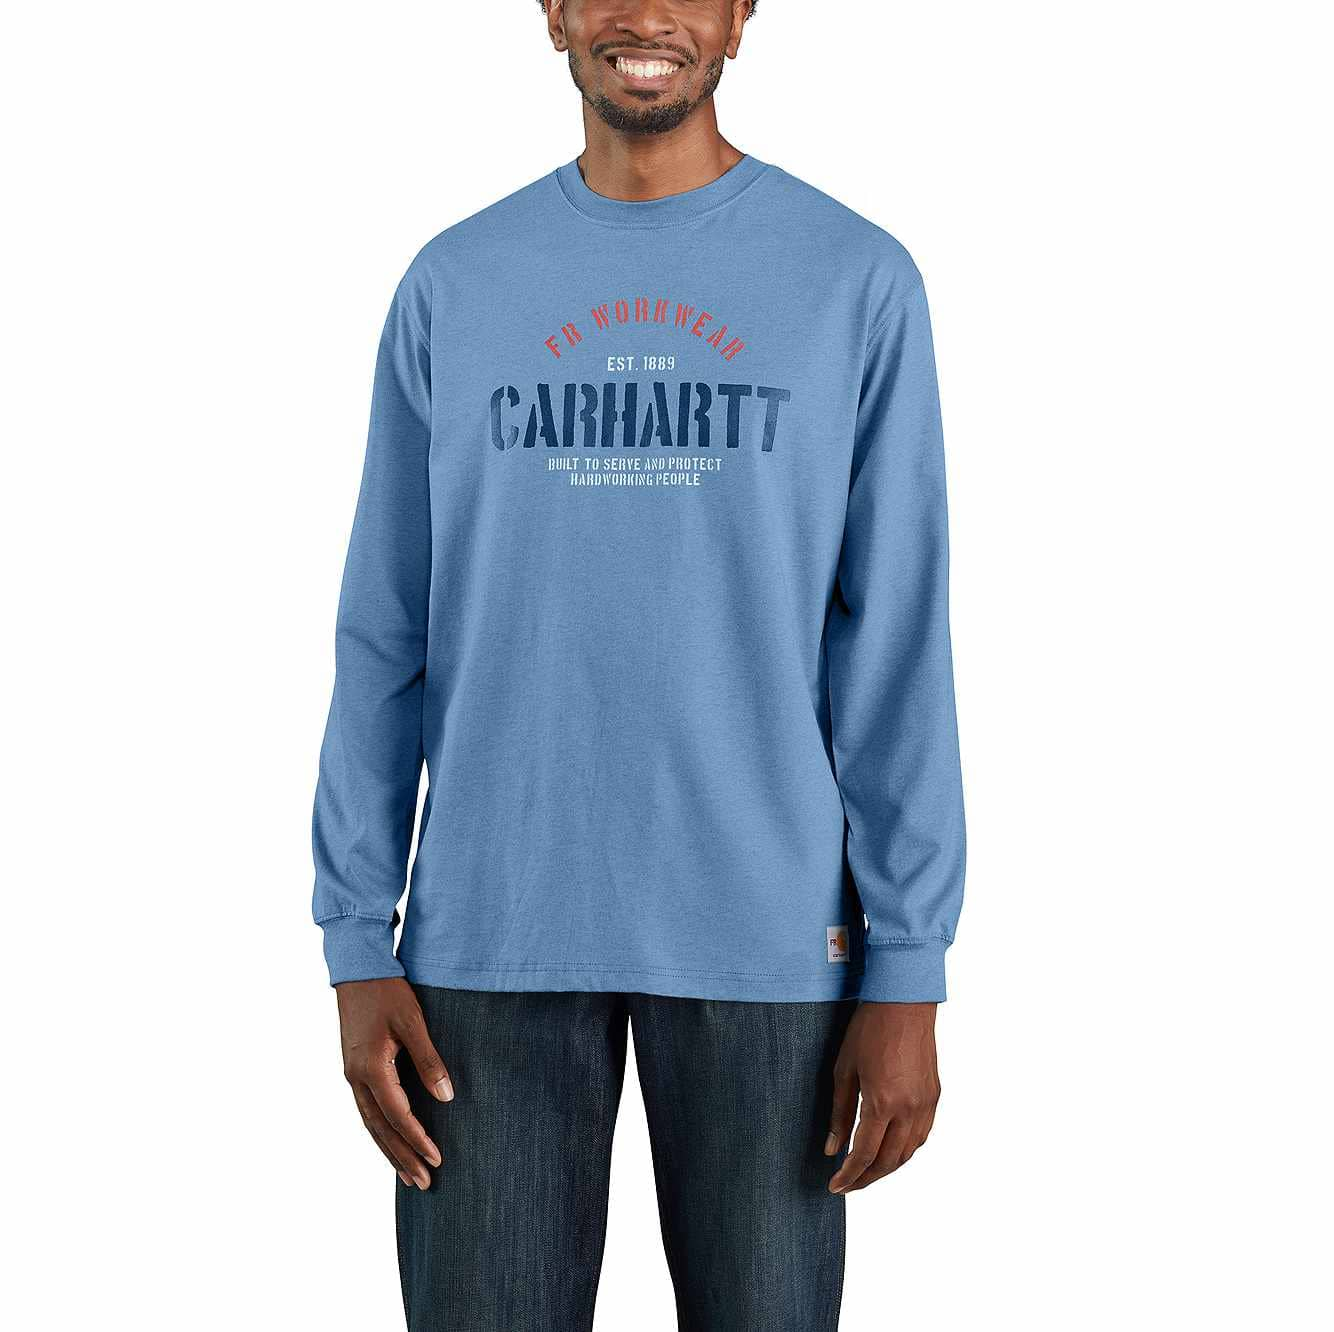 Picture of Flame-Resistant Force Original Fit Midweight Long-Sleeve Workwear Graphic T-Shirt in Coastal Heather